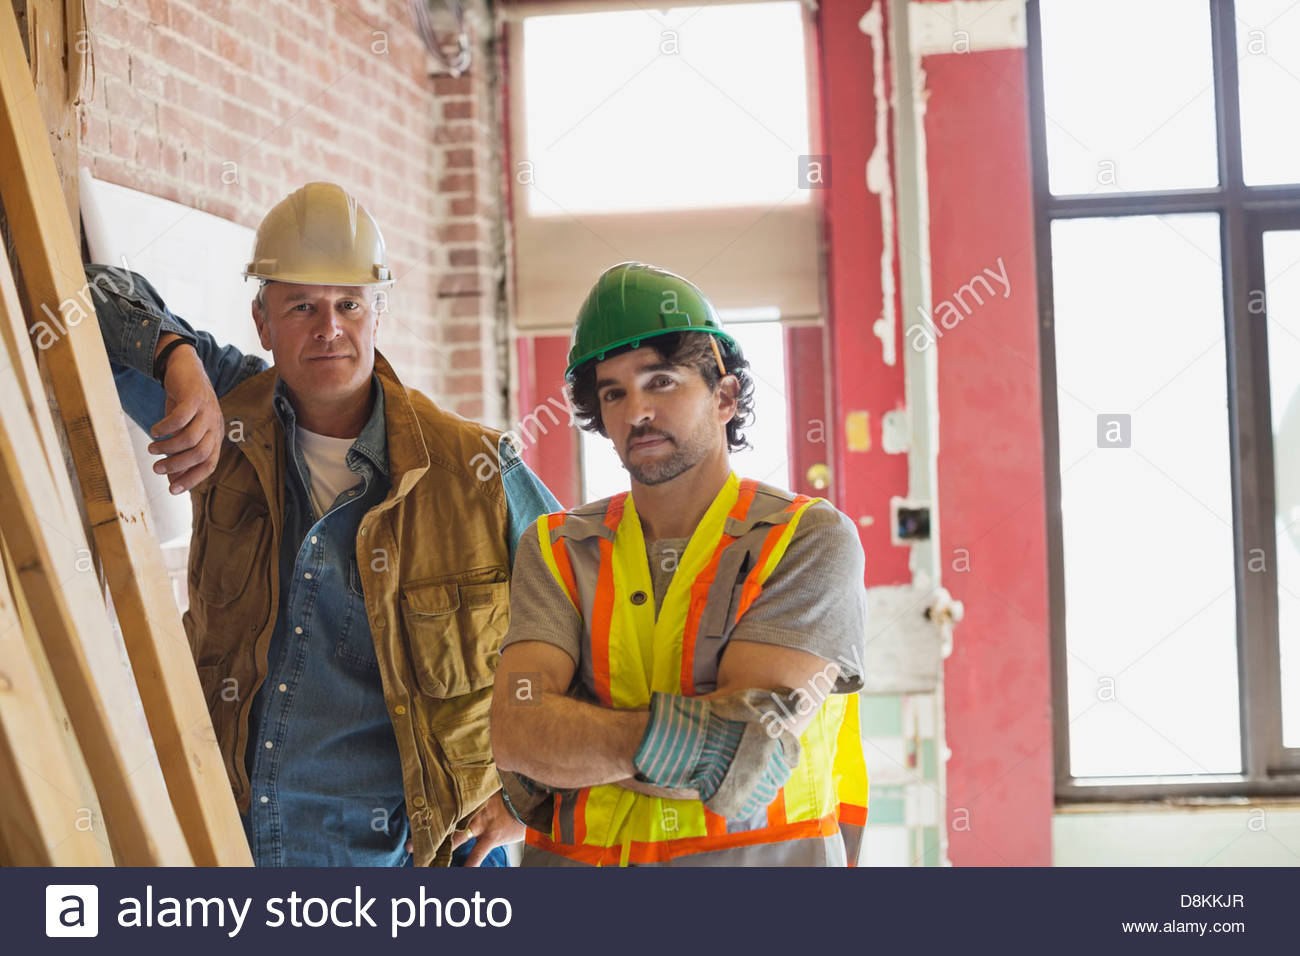 Portrait of tradesman and foreman at construction site - Stock Image